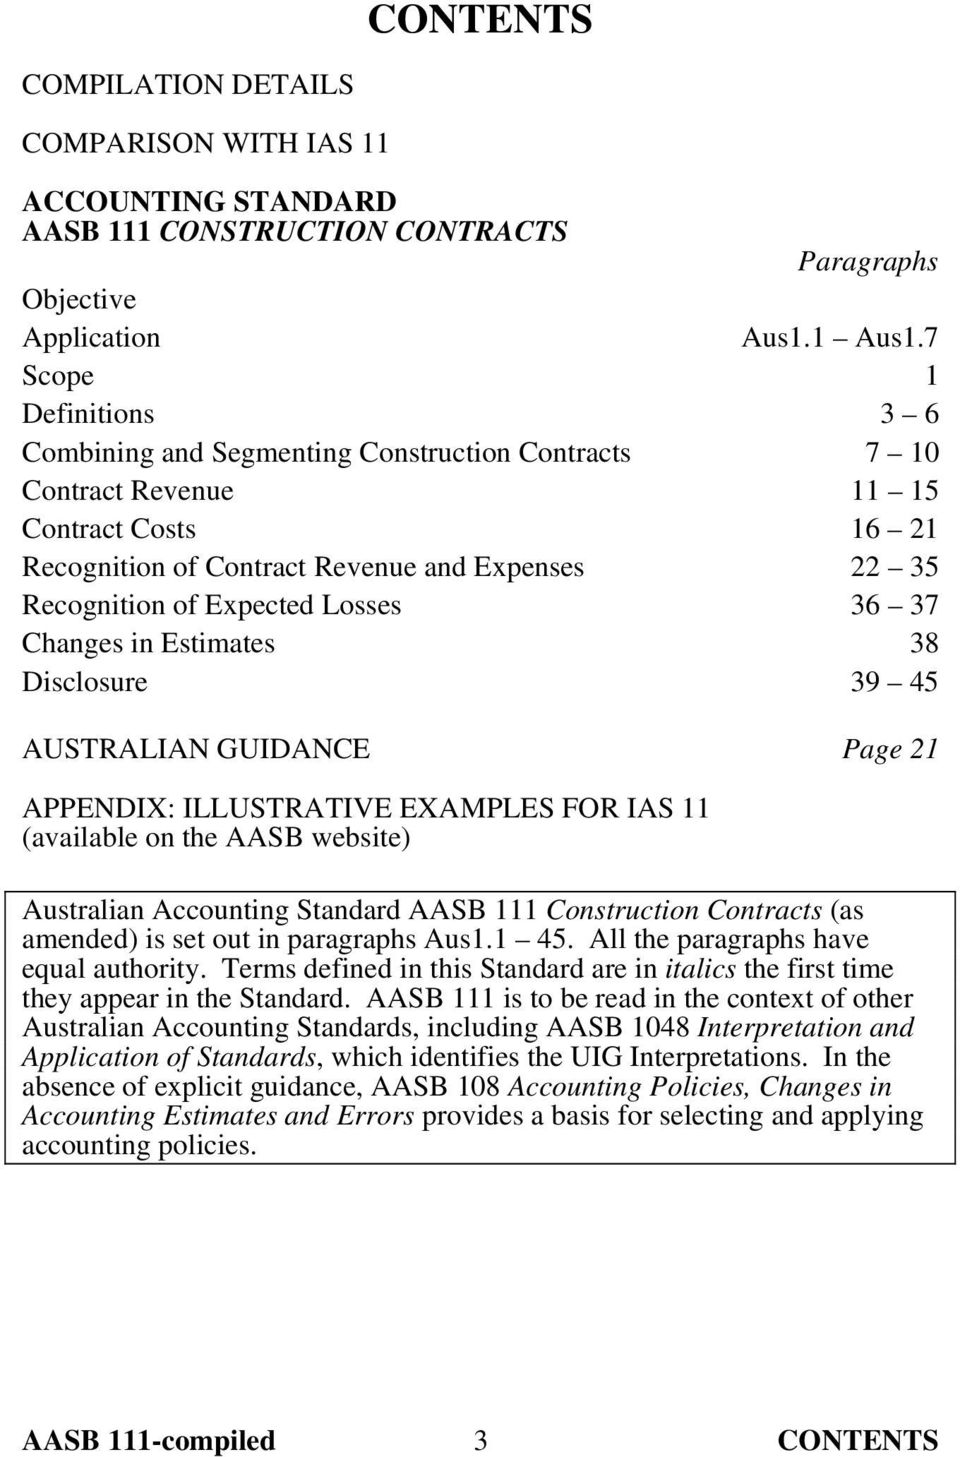 Losses 36 37 Changes in Estimates 38 Disclosure 39 45 AUSTRALIAN GUIDANCE Page 21 APPENDIX: ILLUSTRATIVE EXAMPLES FOR IAS 11 (available on the AASB website) Australian Accounting Standard AASB 111